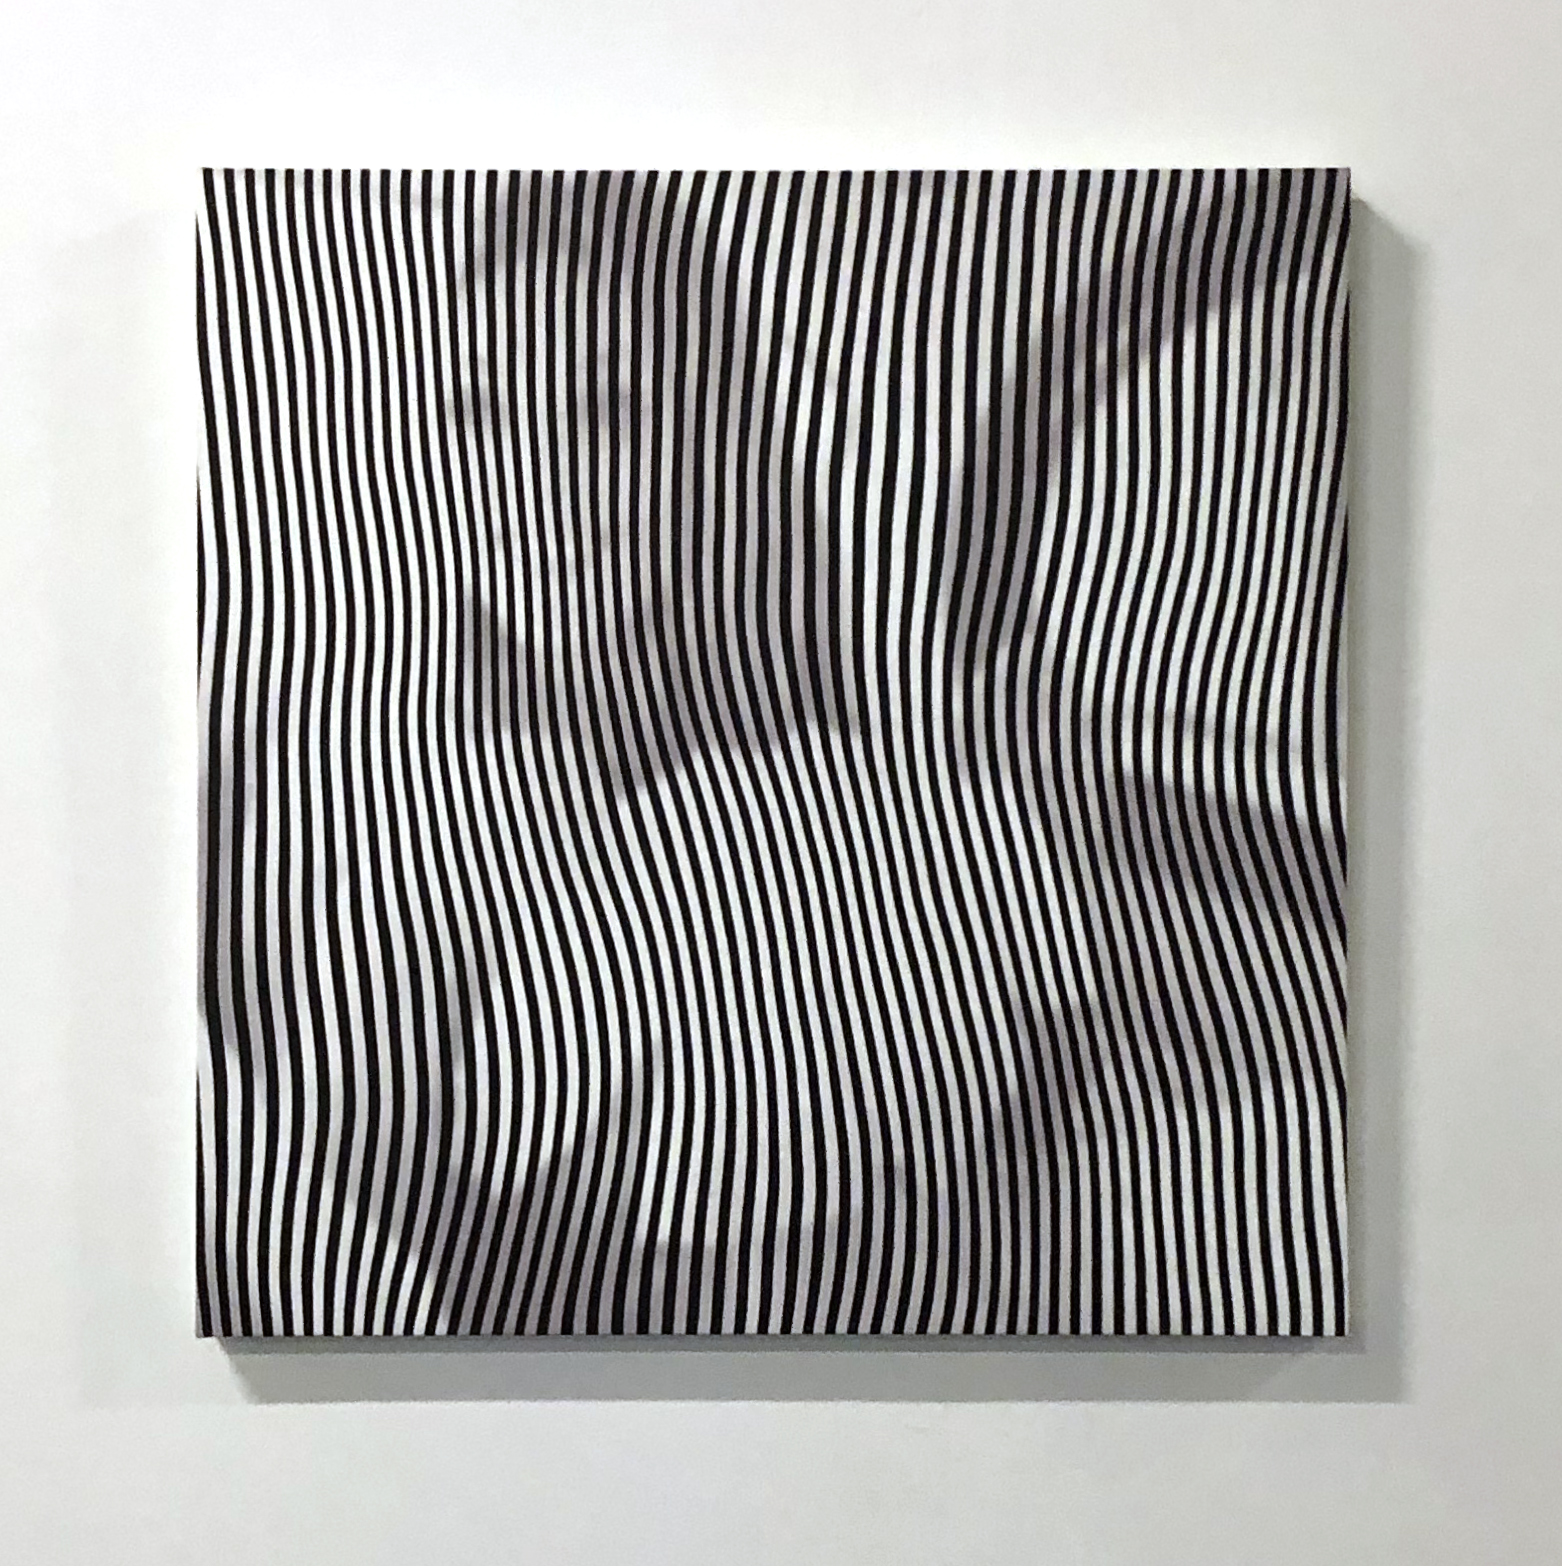 ROBERT LAZZARINI — SOCO Gallery